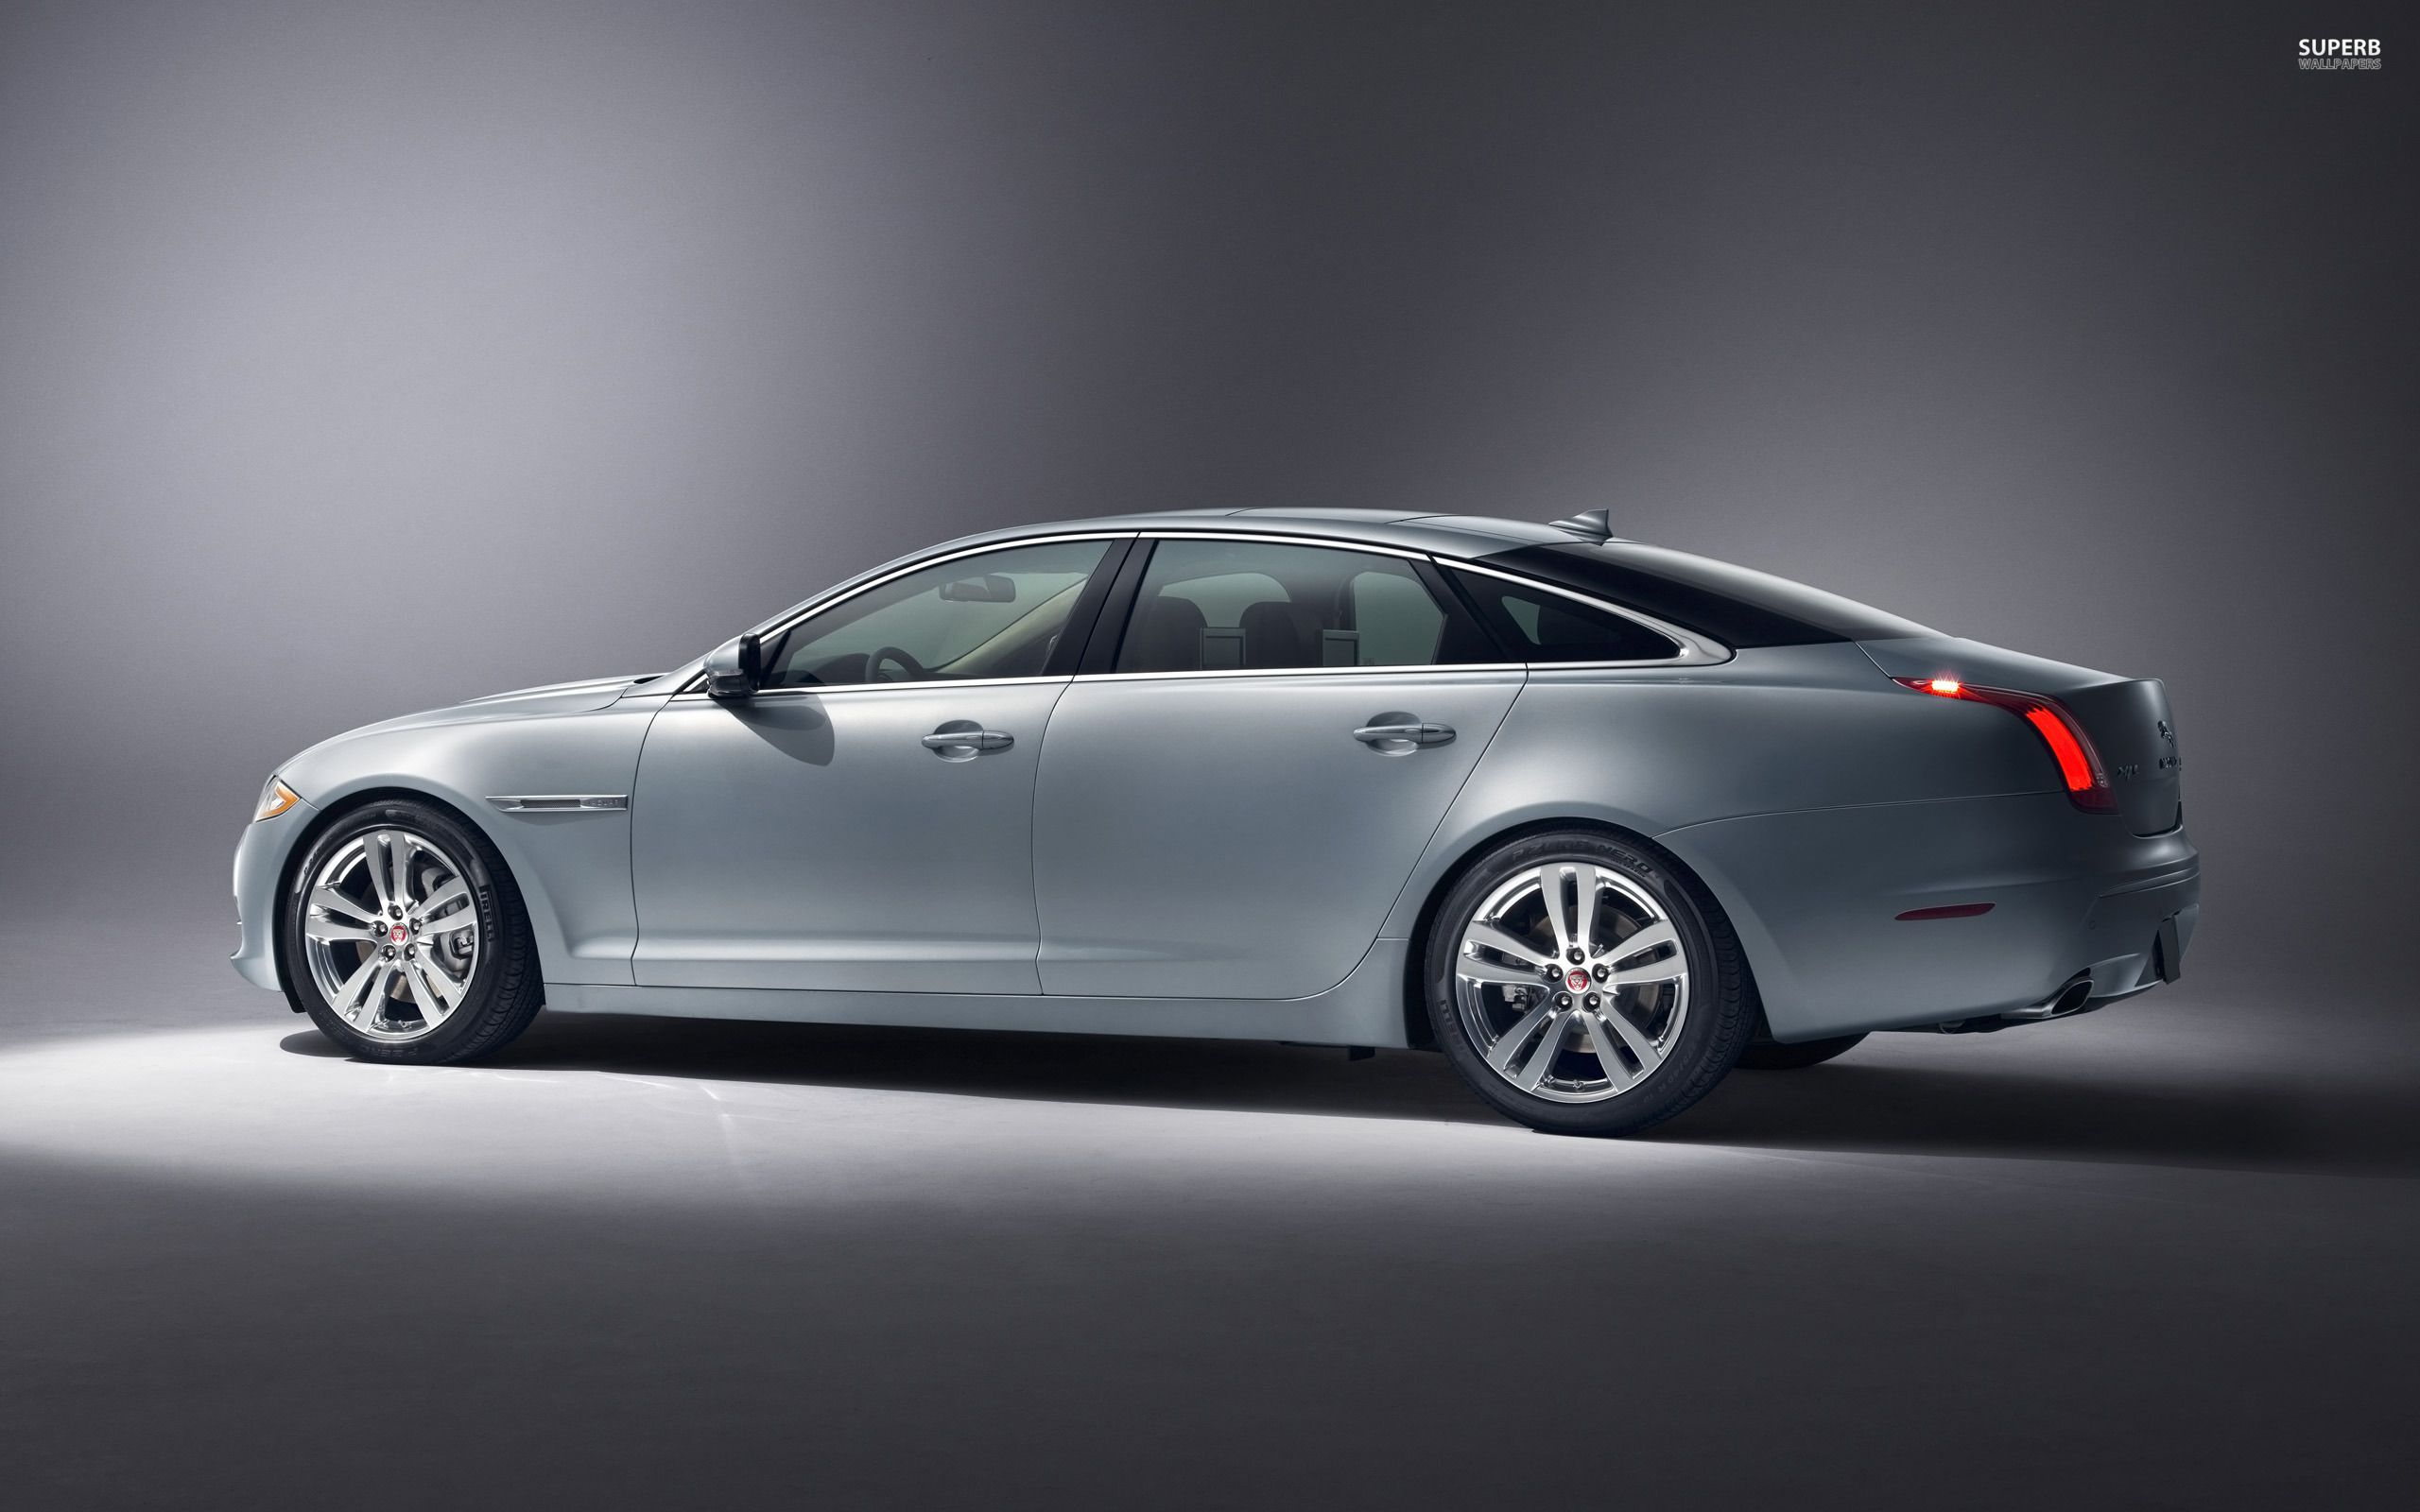 Gentil 2014 Jaguar Cars | 2014 Jaguar XJ Wallpaper   Car Wallpapers   #24970